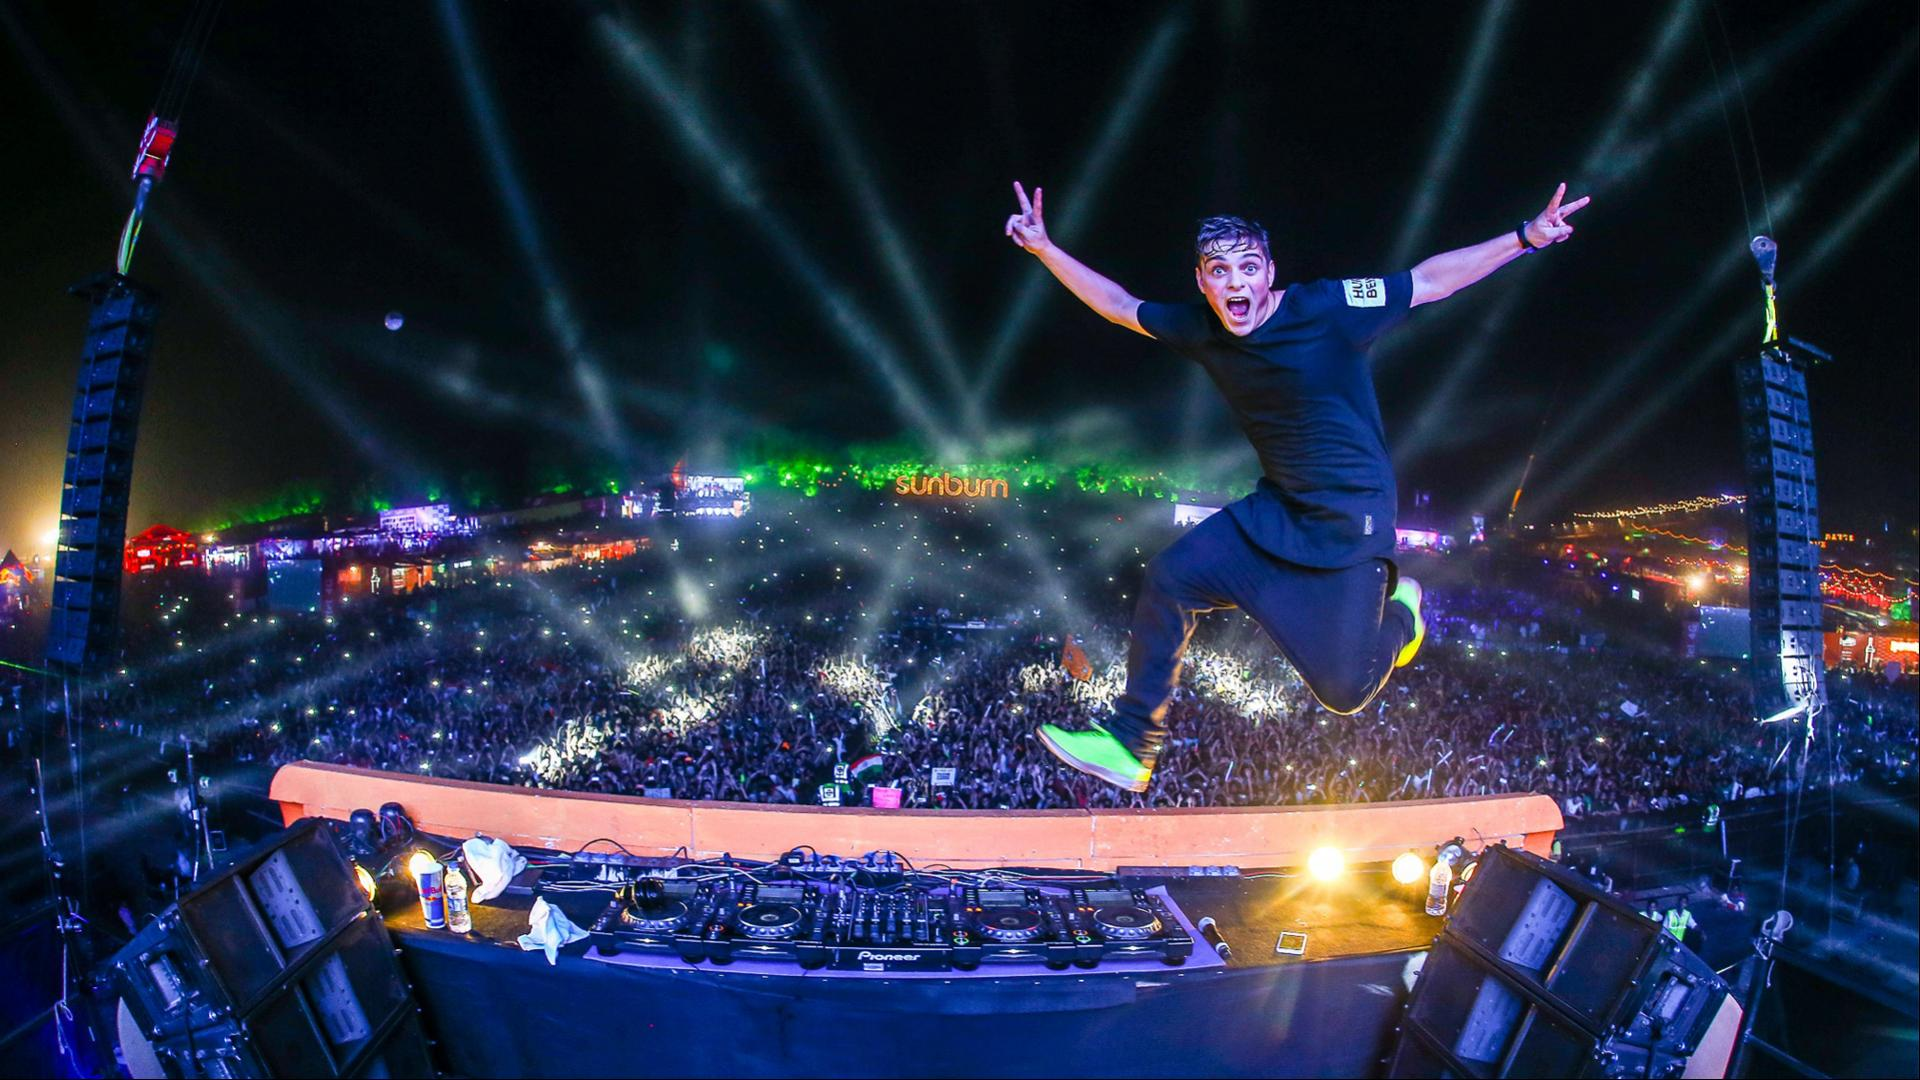 Martin Garrix Wallpapers Top Free Martin Garrix Backgrounds Wallpaperaccess